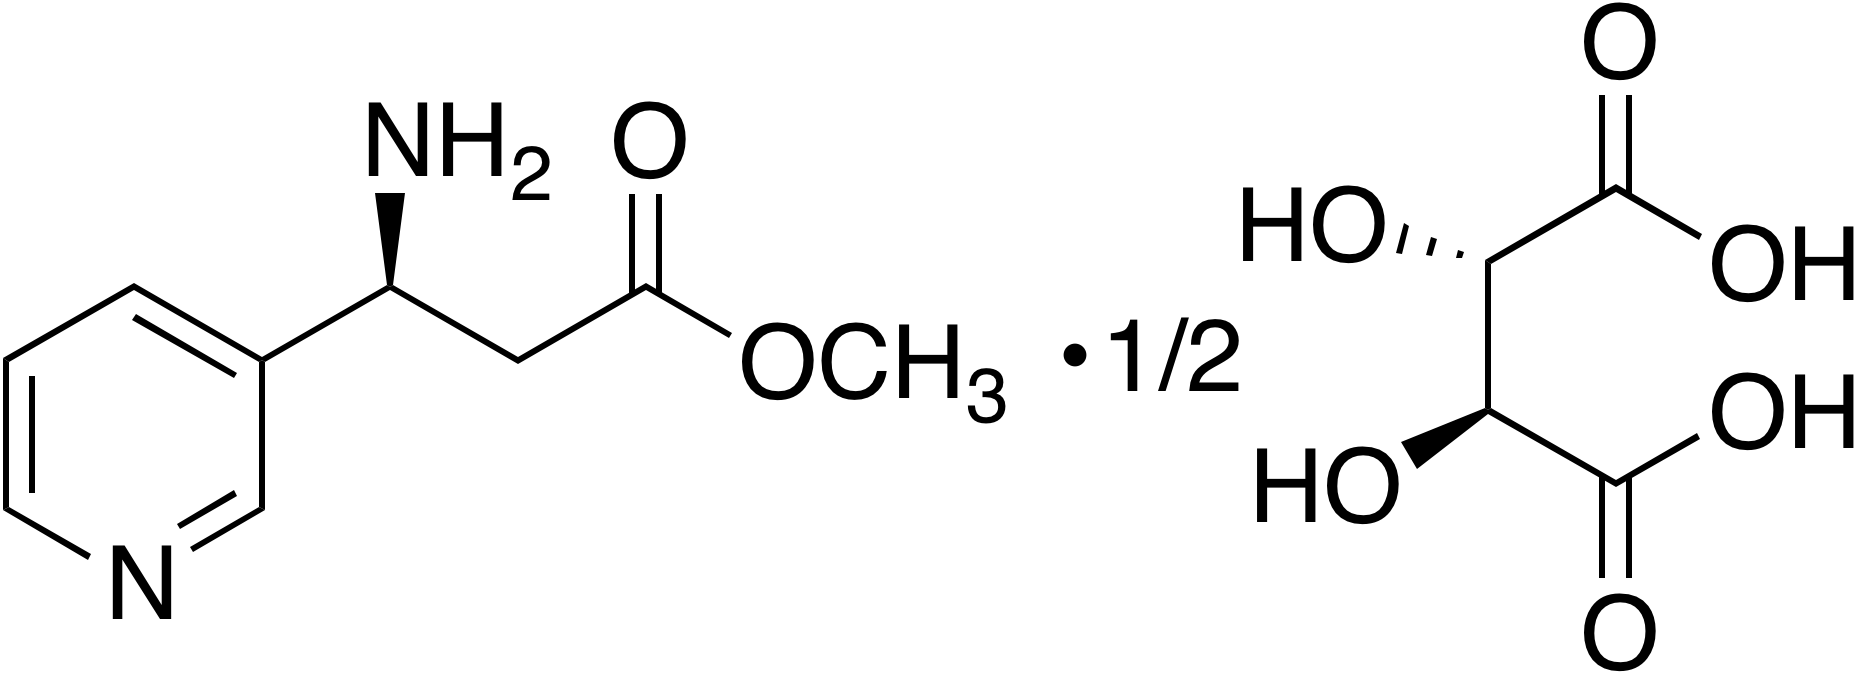 Methyl (S)-3-amino-3-(3-pyridyl)propanoate hemitartrate